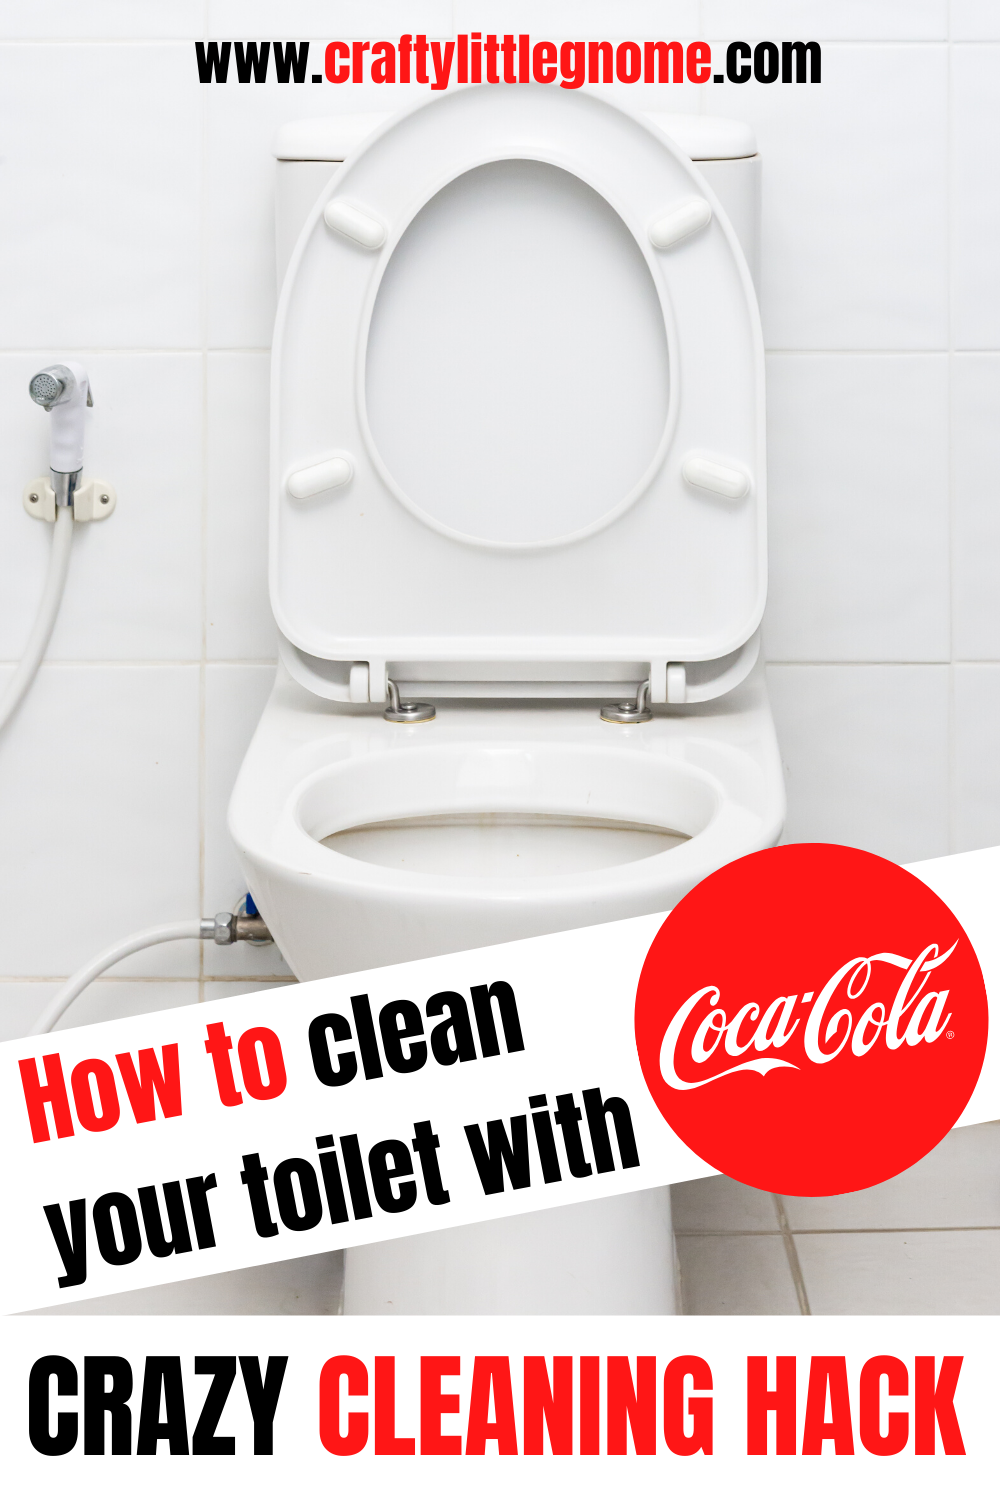 Use Coke To Clean Stubborn Toilet Stains With This Cleaning Hack Crafty Little Gnome Toilet Cleaning Toilet Stains Toilet Cleaning Hacks